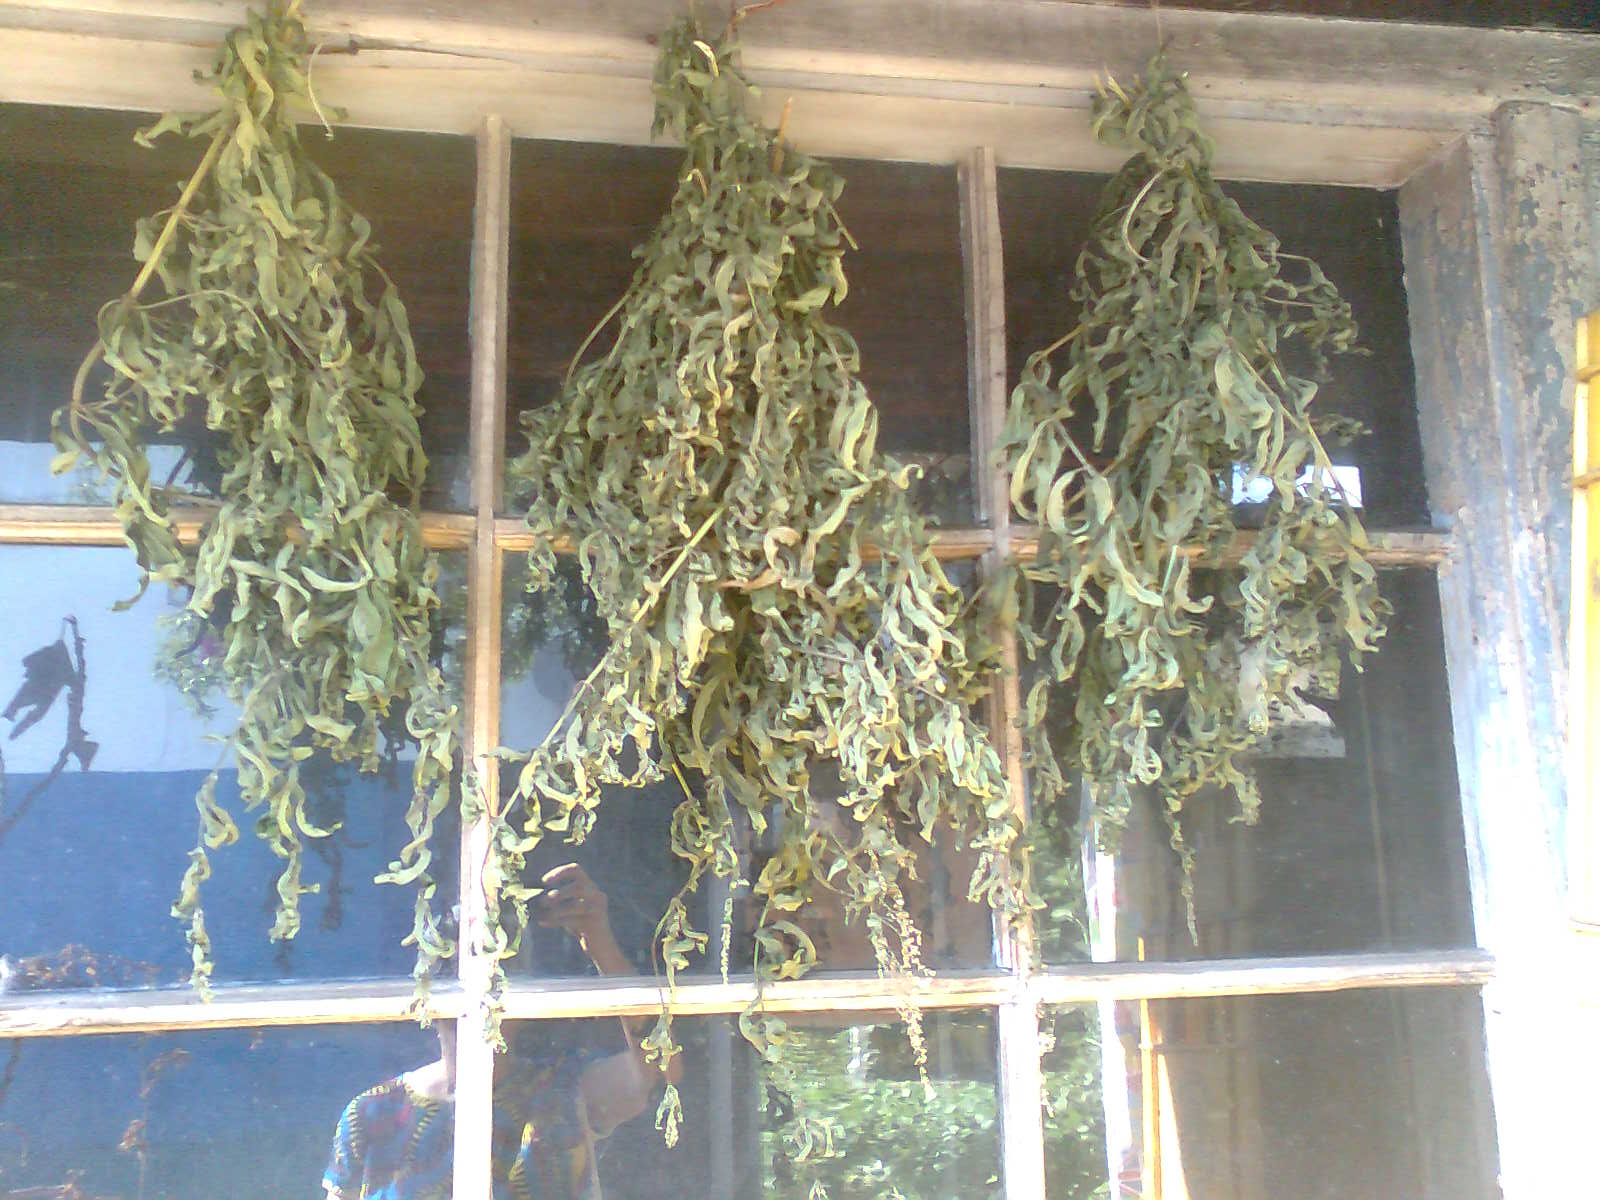 drying medicinal herbs